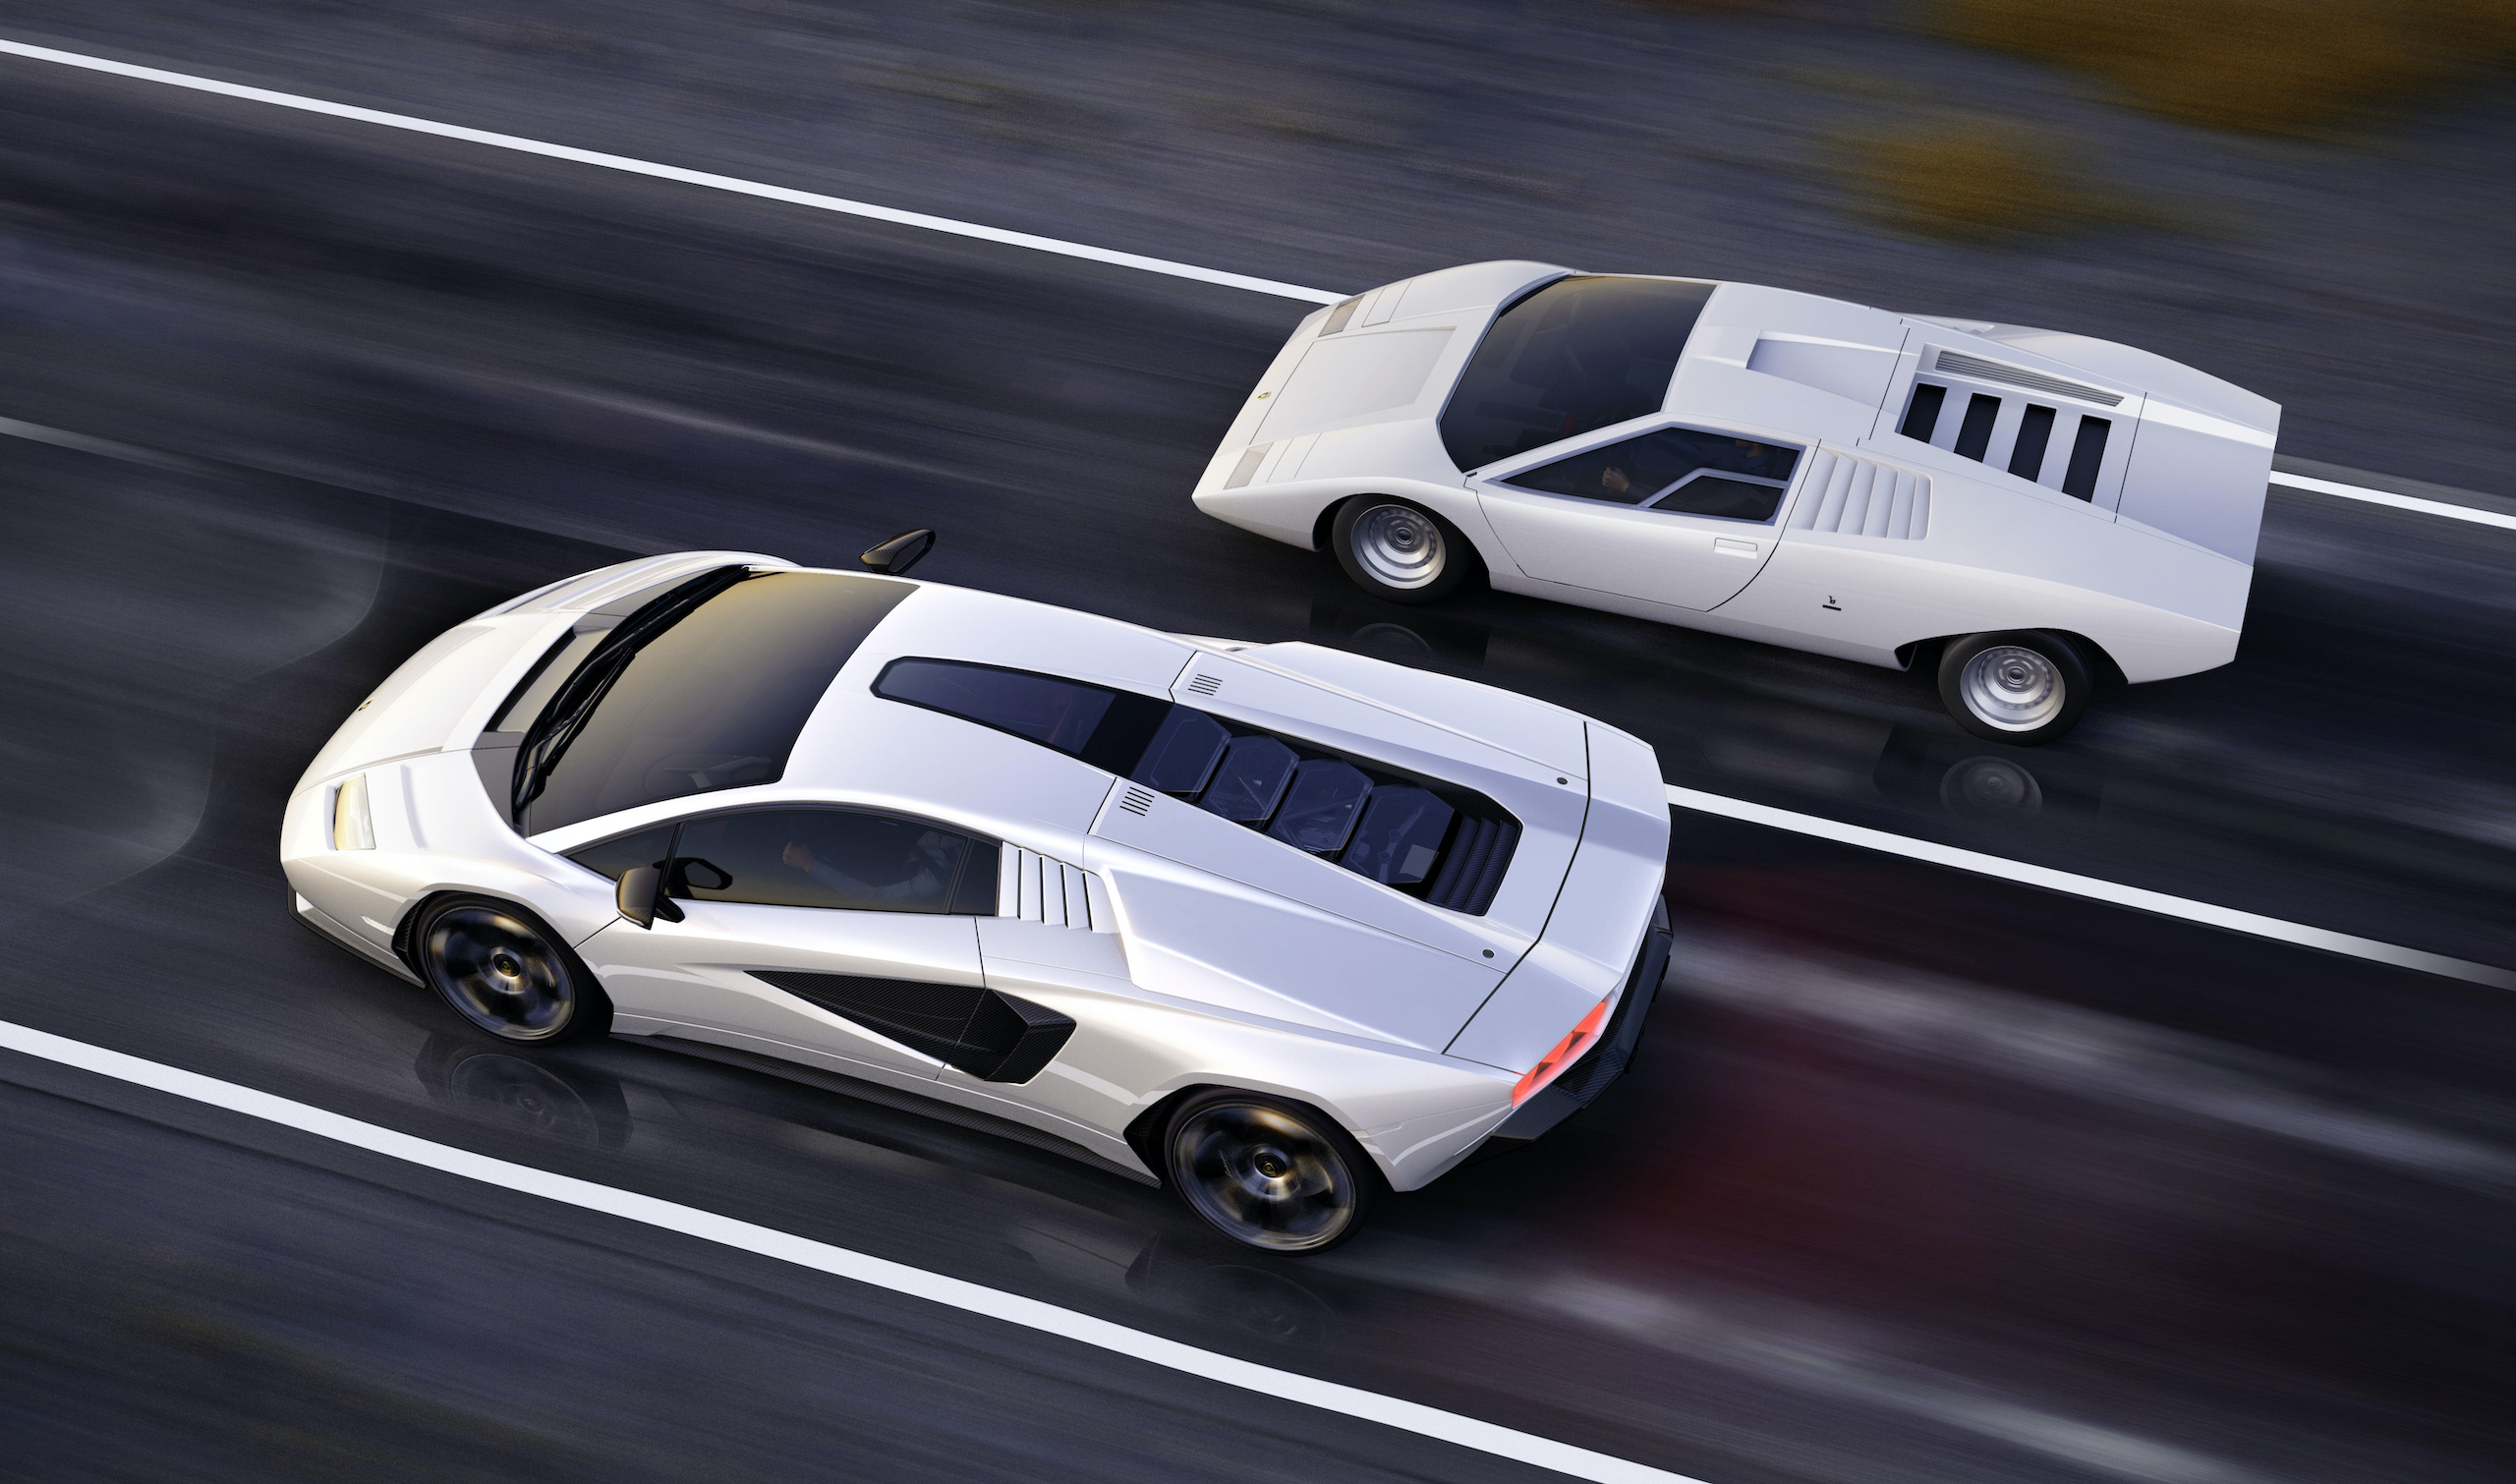 Countach LPI 800 old and new